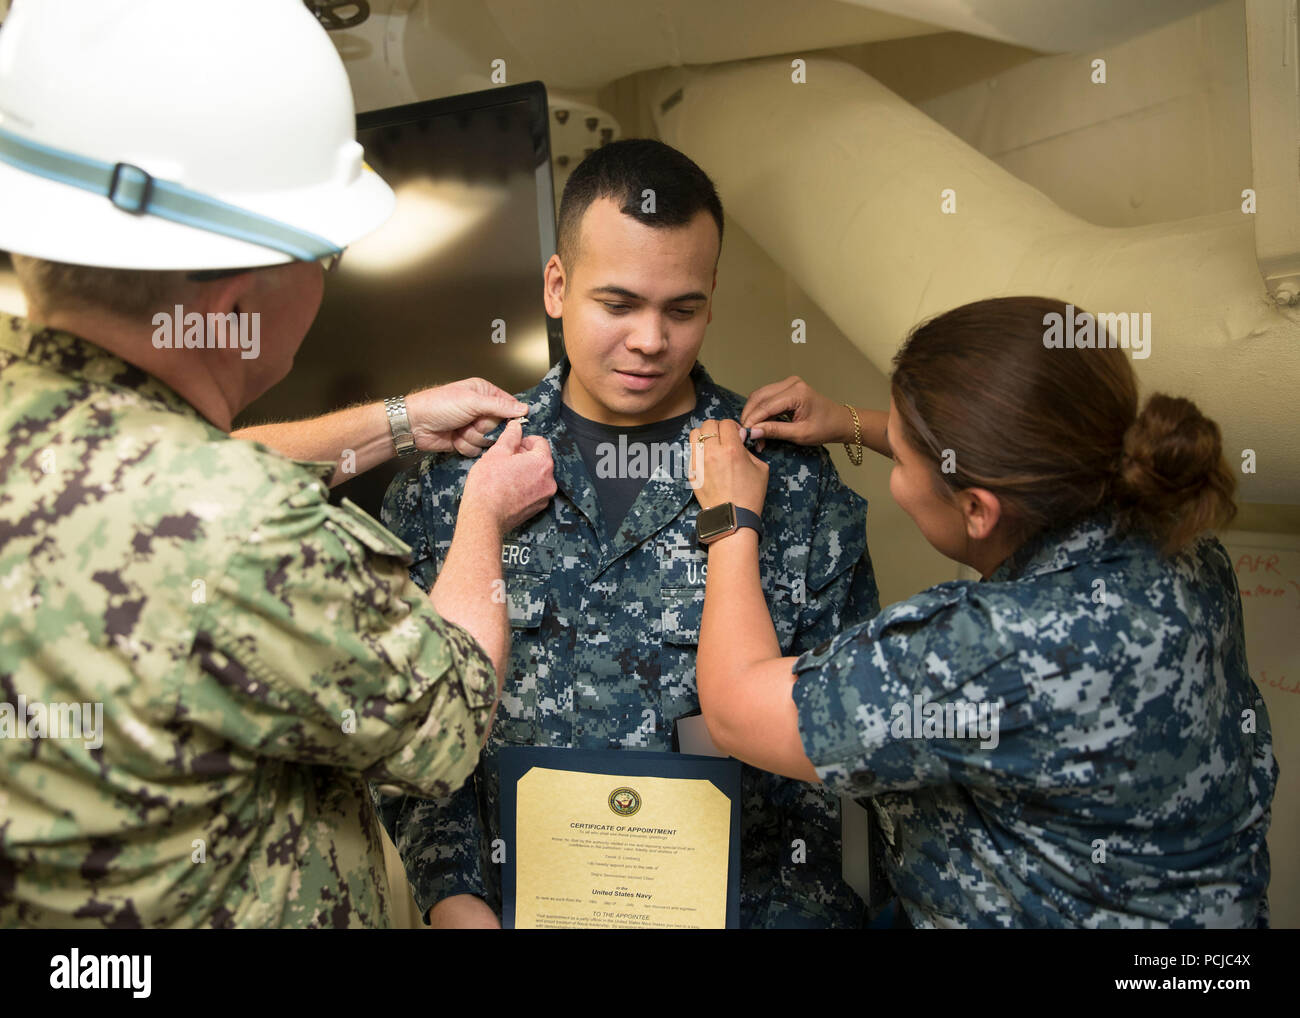 NEWPORT NEWS, Va. (July 30, 2018) -- Ship's Serviceman 2nd Class Dereck S. Lindburg, from Manila, Philippines, assigned to USS Gerald R. Ford's (CVN 78) supply department, is pinned to his Current rank by Capt. Richard McCormack, left, Ford's commanding officer, and Senior Chief Ship's Serviceman Angela Zamora, right, from Jersey City, New Jersey, during a meritorious advancement ceremony in the ship's supply office. (U.S. Navy photo by Mass Communication Specialist 3rd Class Ryan Carter) (This image has been altered by blurring out badges for security purposes) - Stock Image